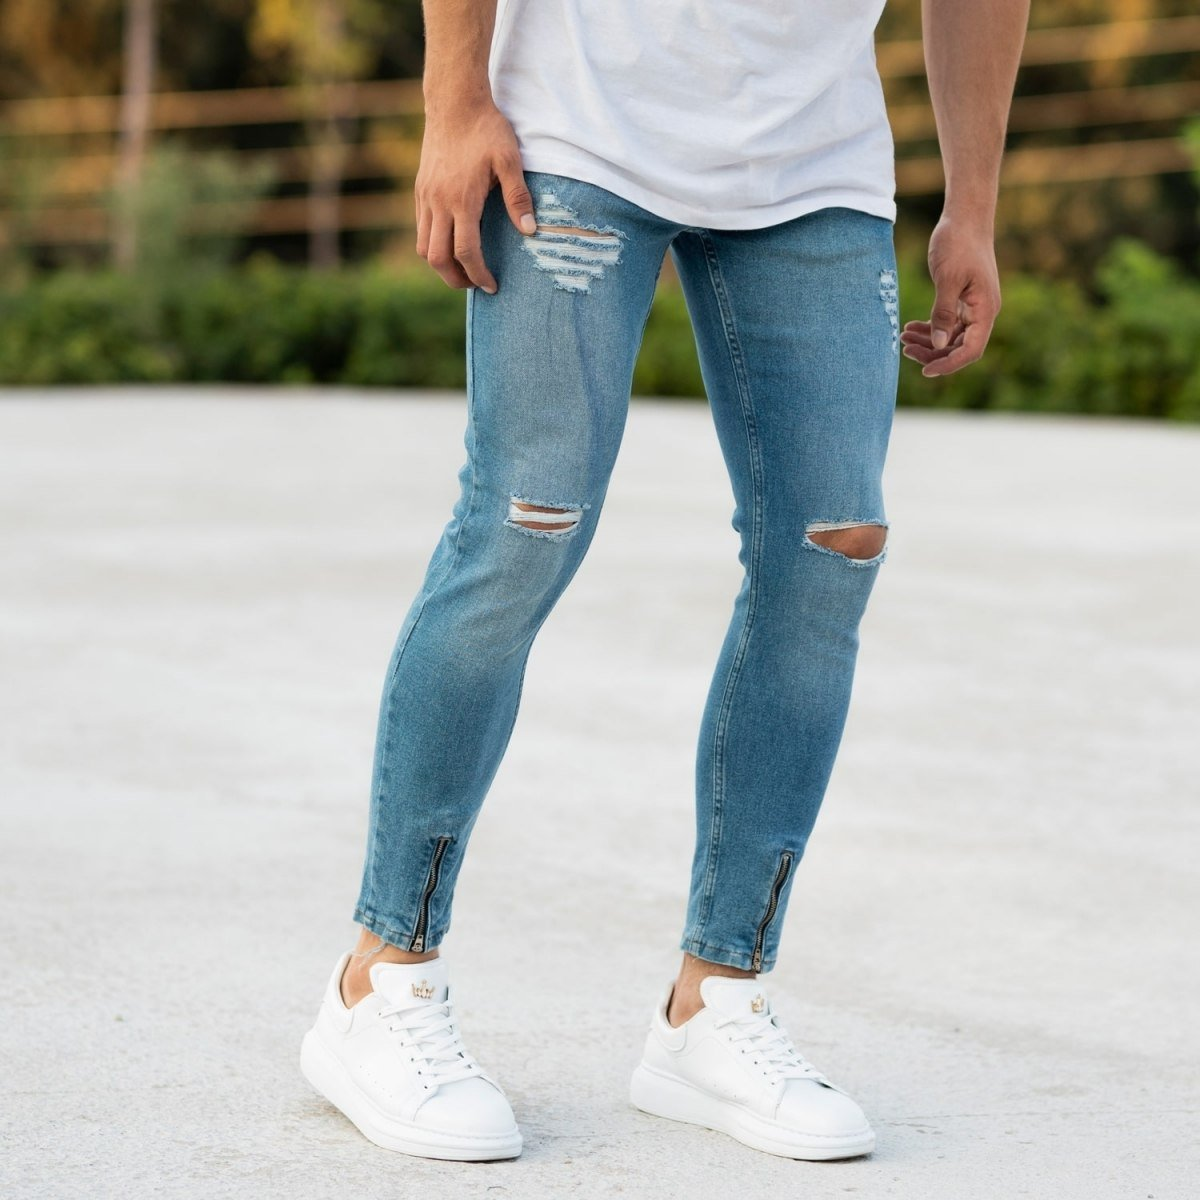 Men's Blue Ripped&Zipped Jeans